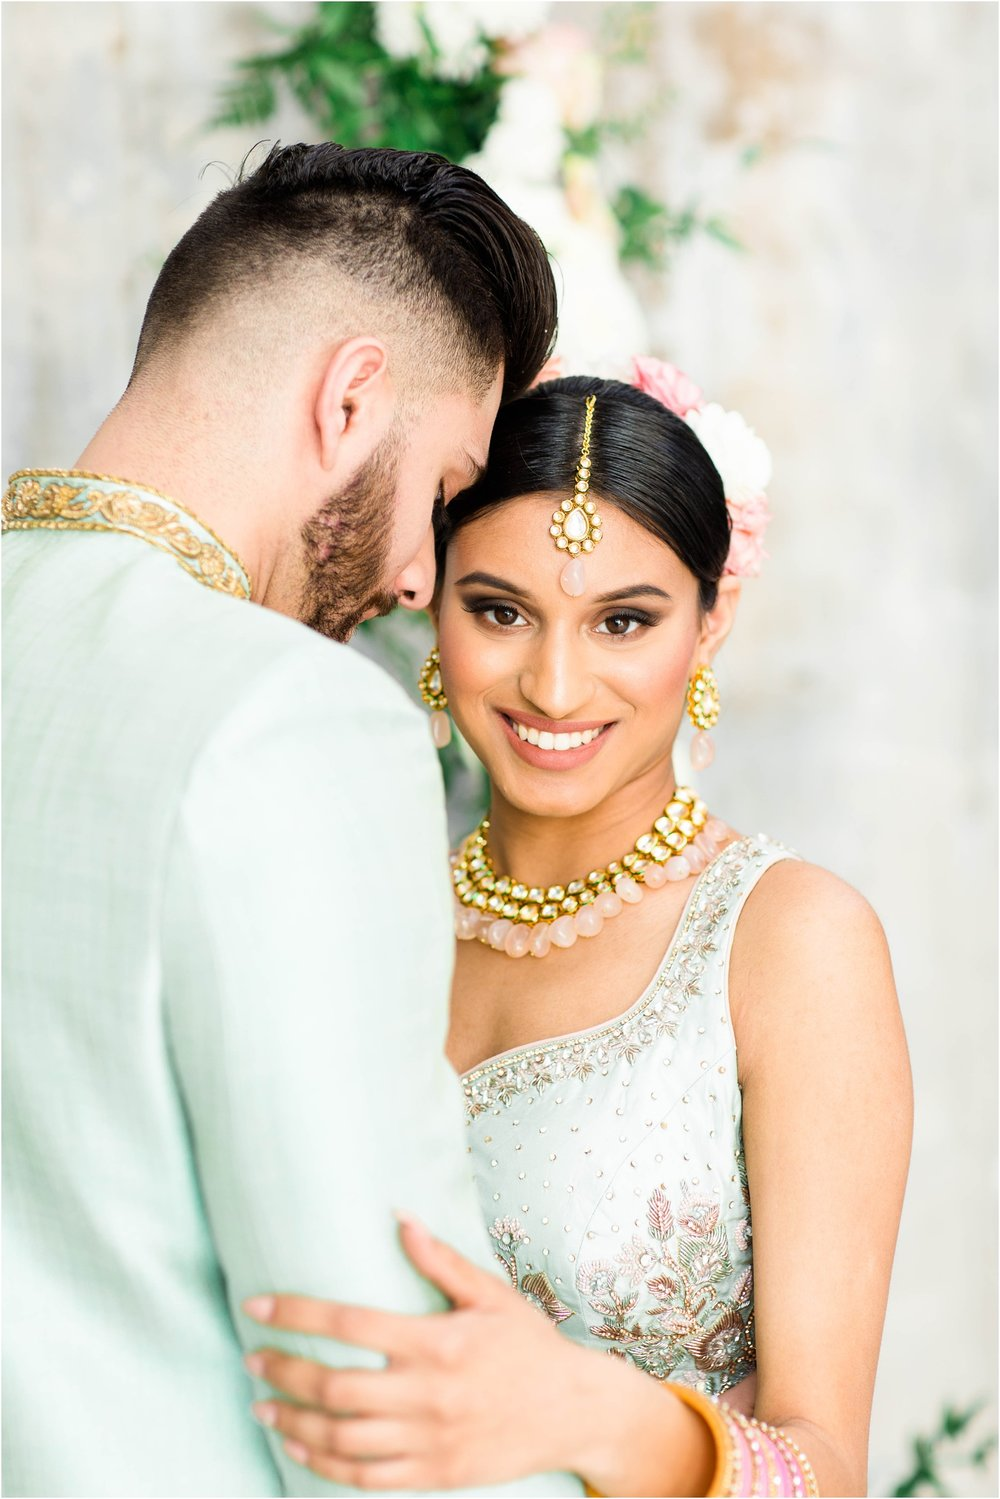 Mint-Room-Studios-Rustic-Blush-Styled-Shoot-Toronto-Mississauga-Brampton-Scarborough-GTA-Pakistani-Indian-Wedding-Engagement-Photographer-Photography_0023.jpg